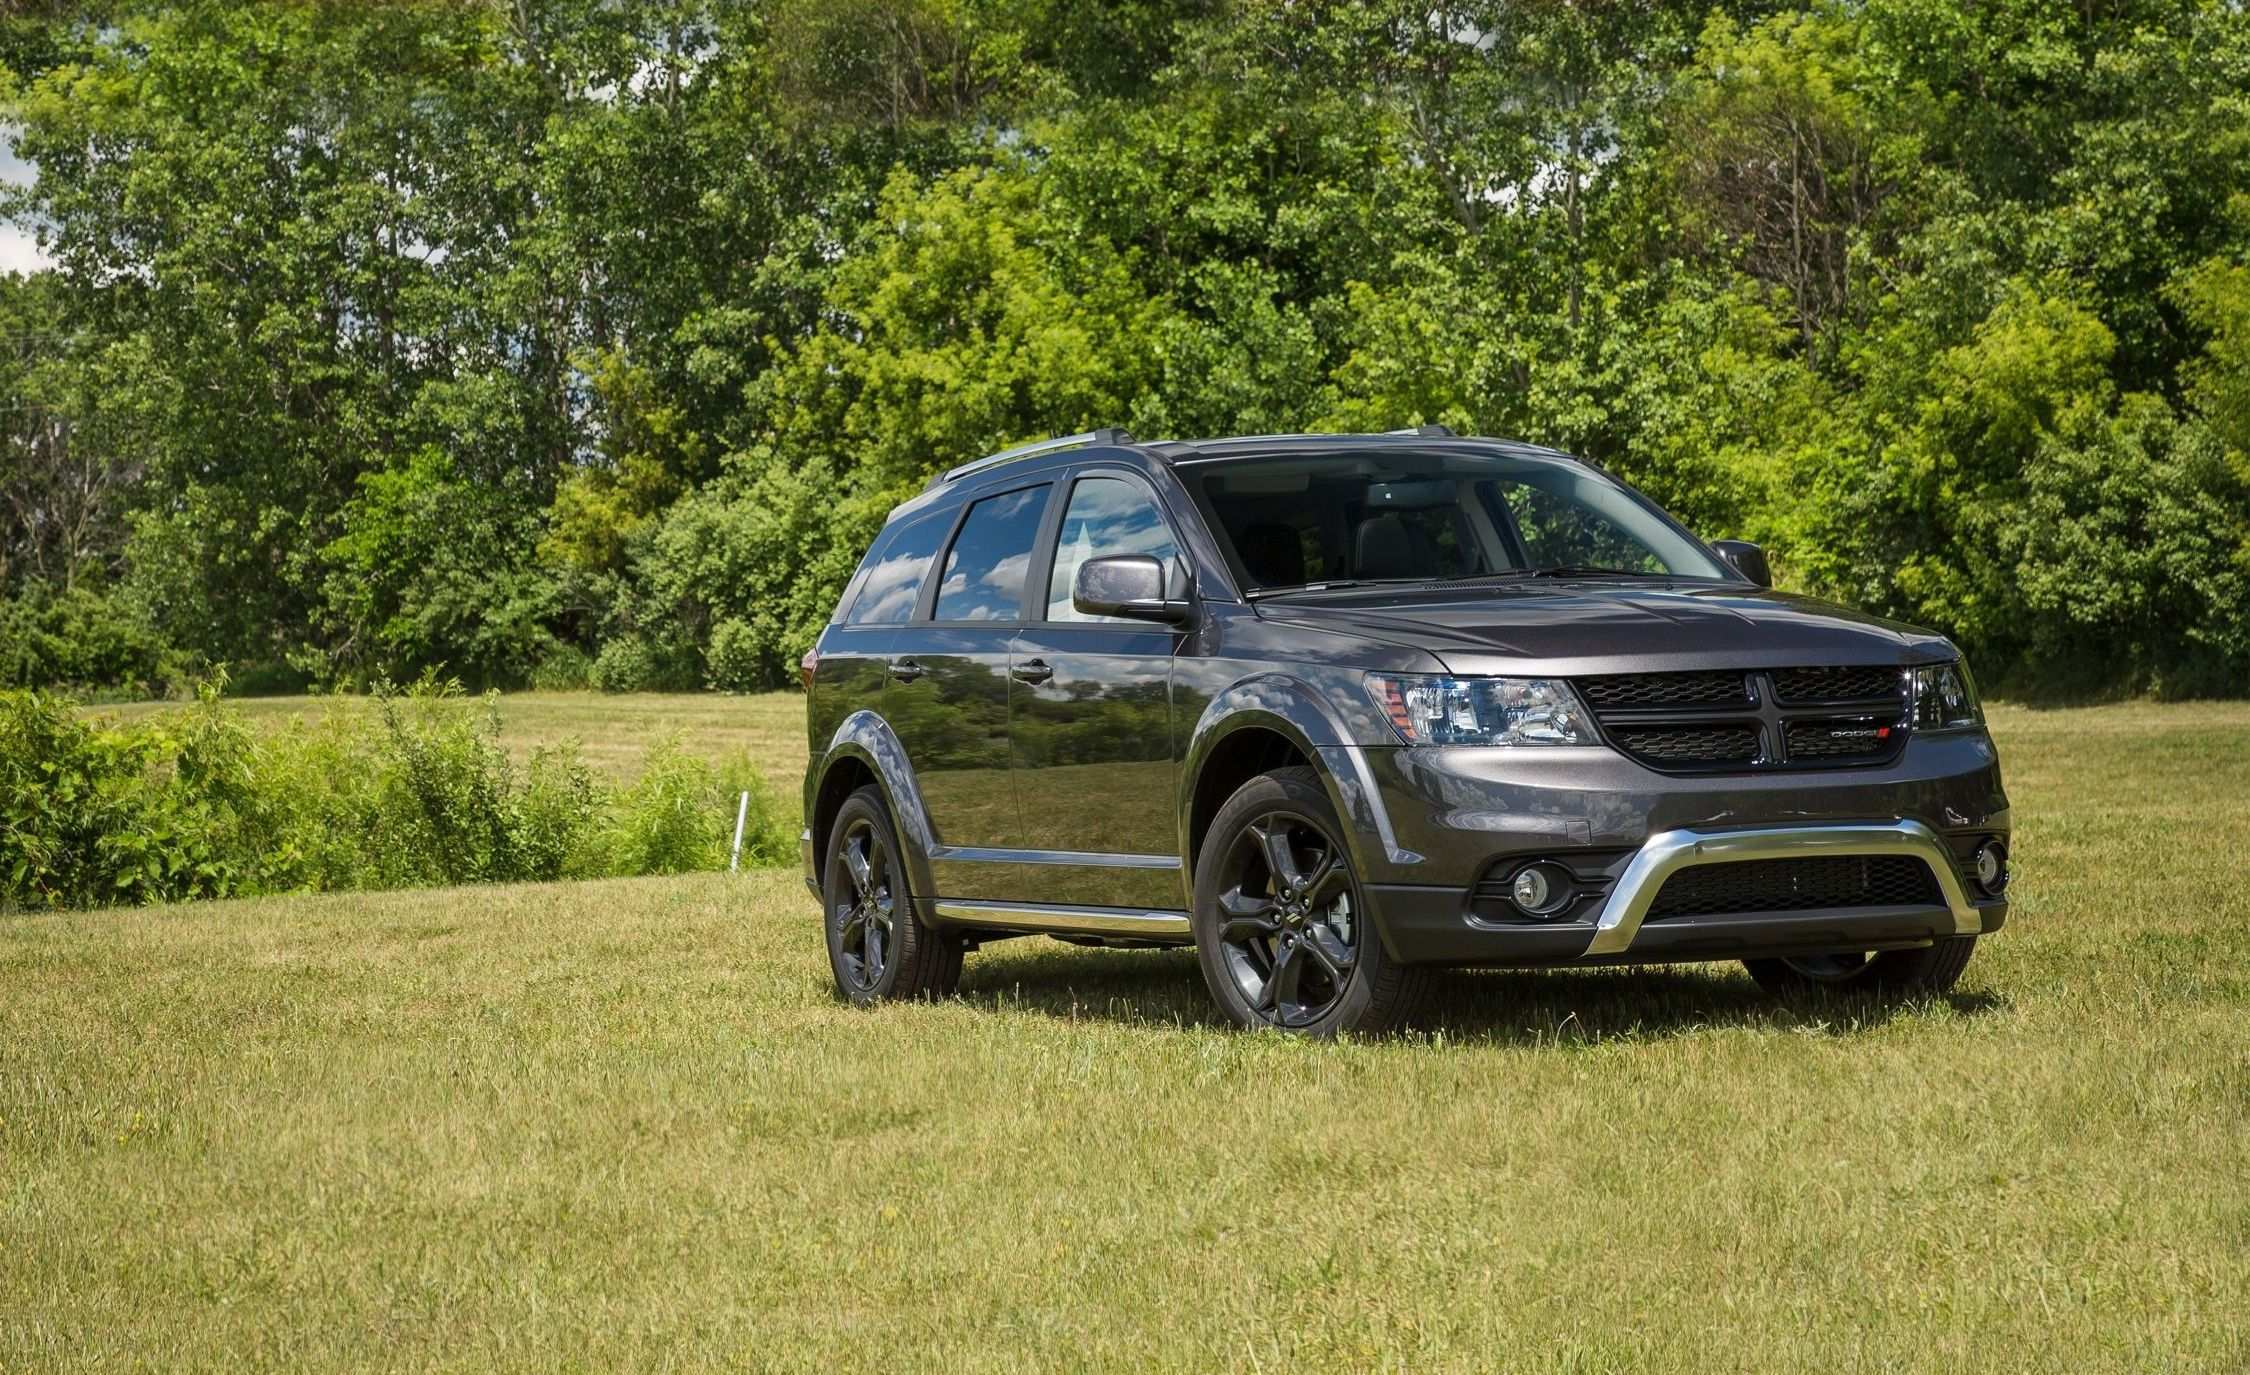 95 New 2019 Dodge Journey Srt Release Date And Concept